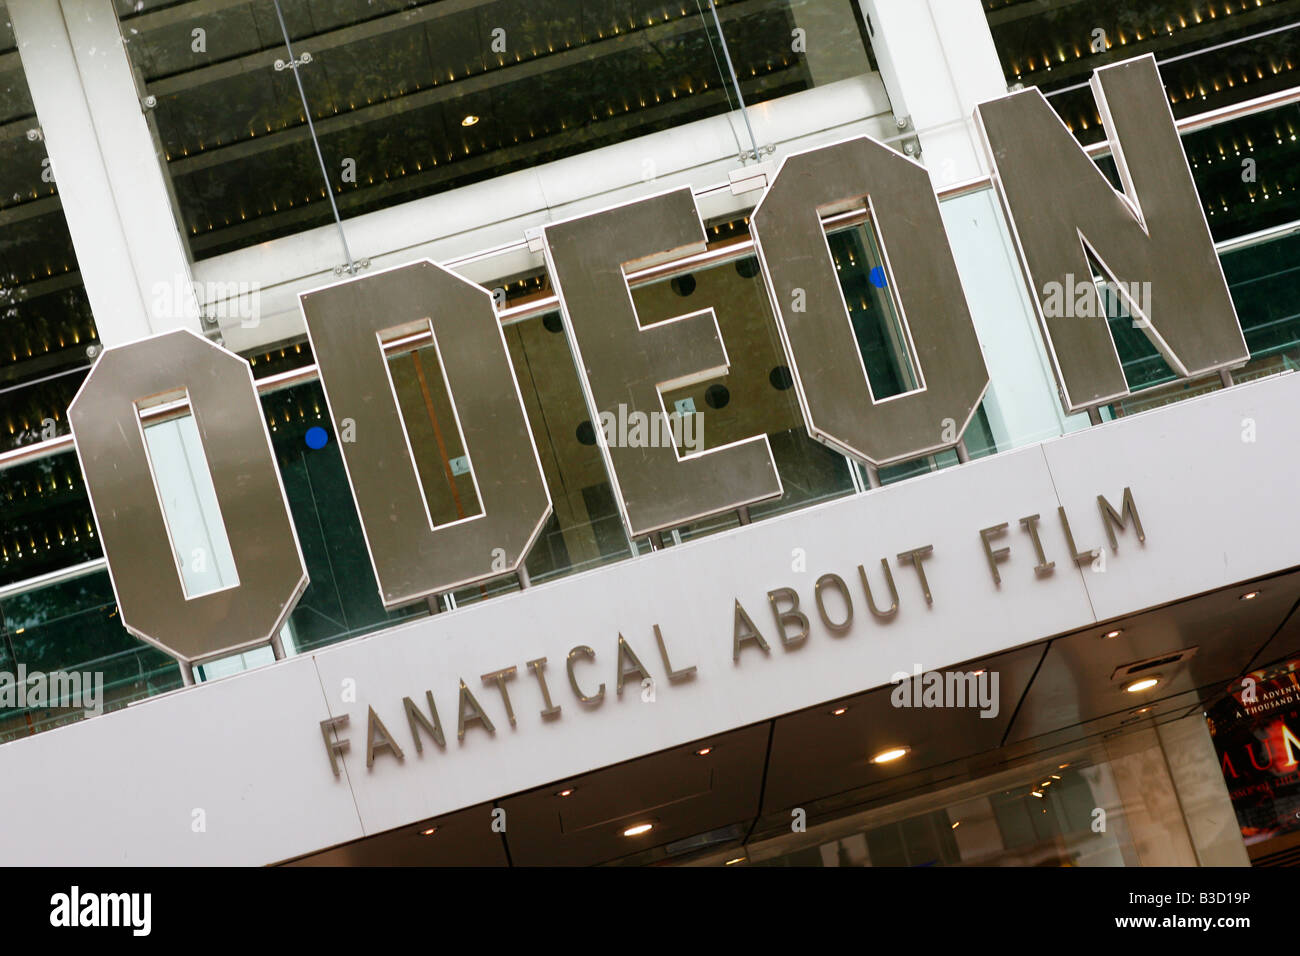 Odeon cinema sign - Stock Image